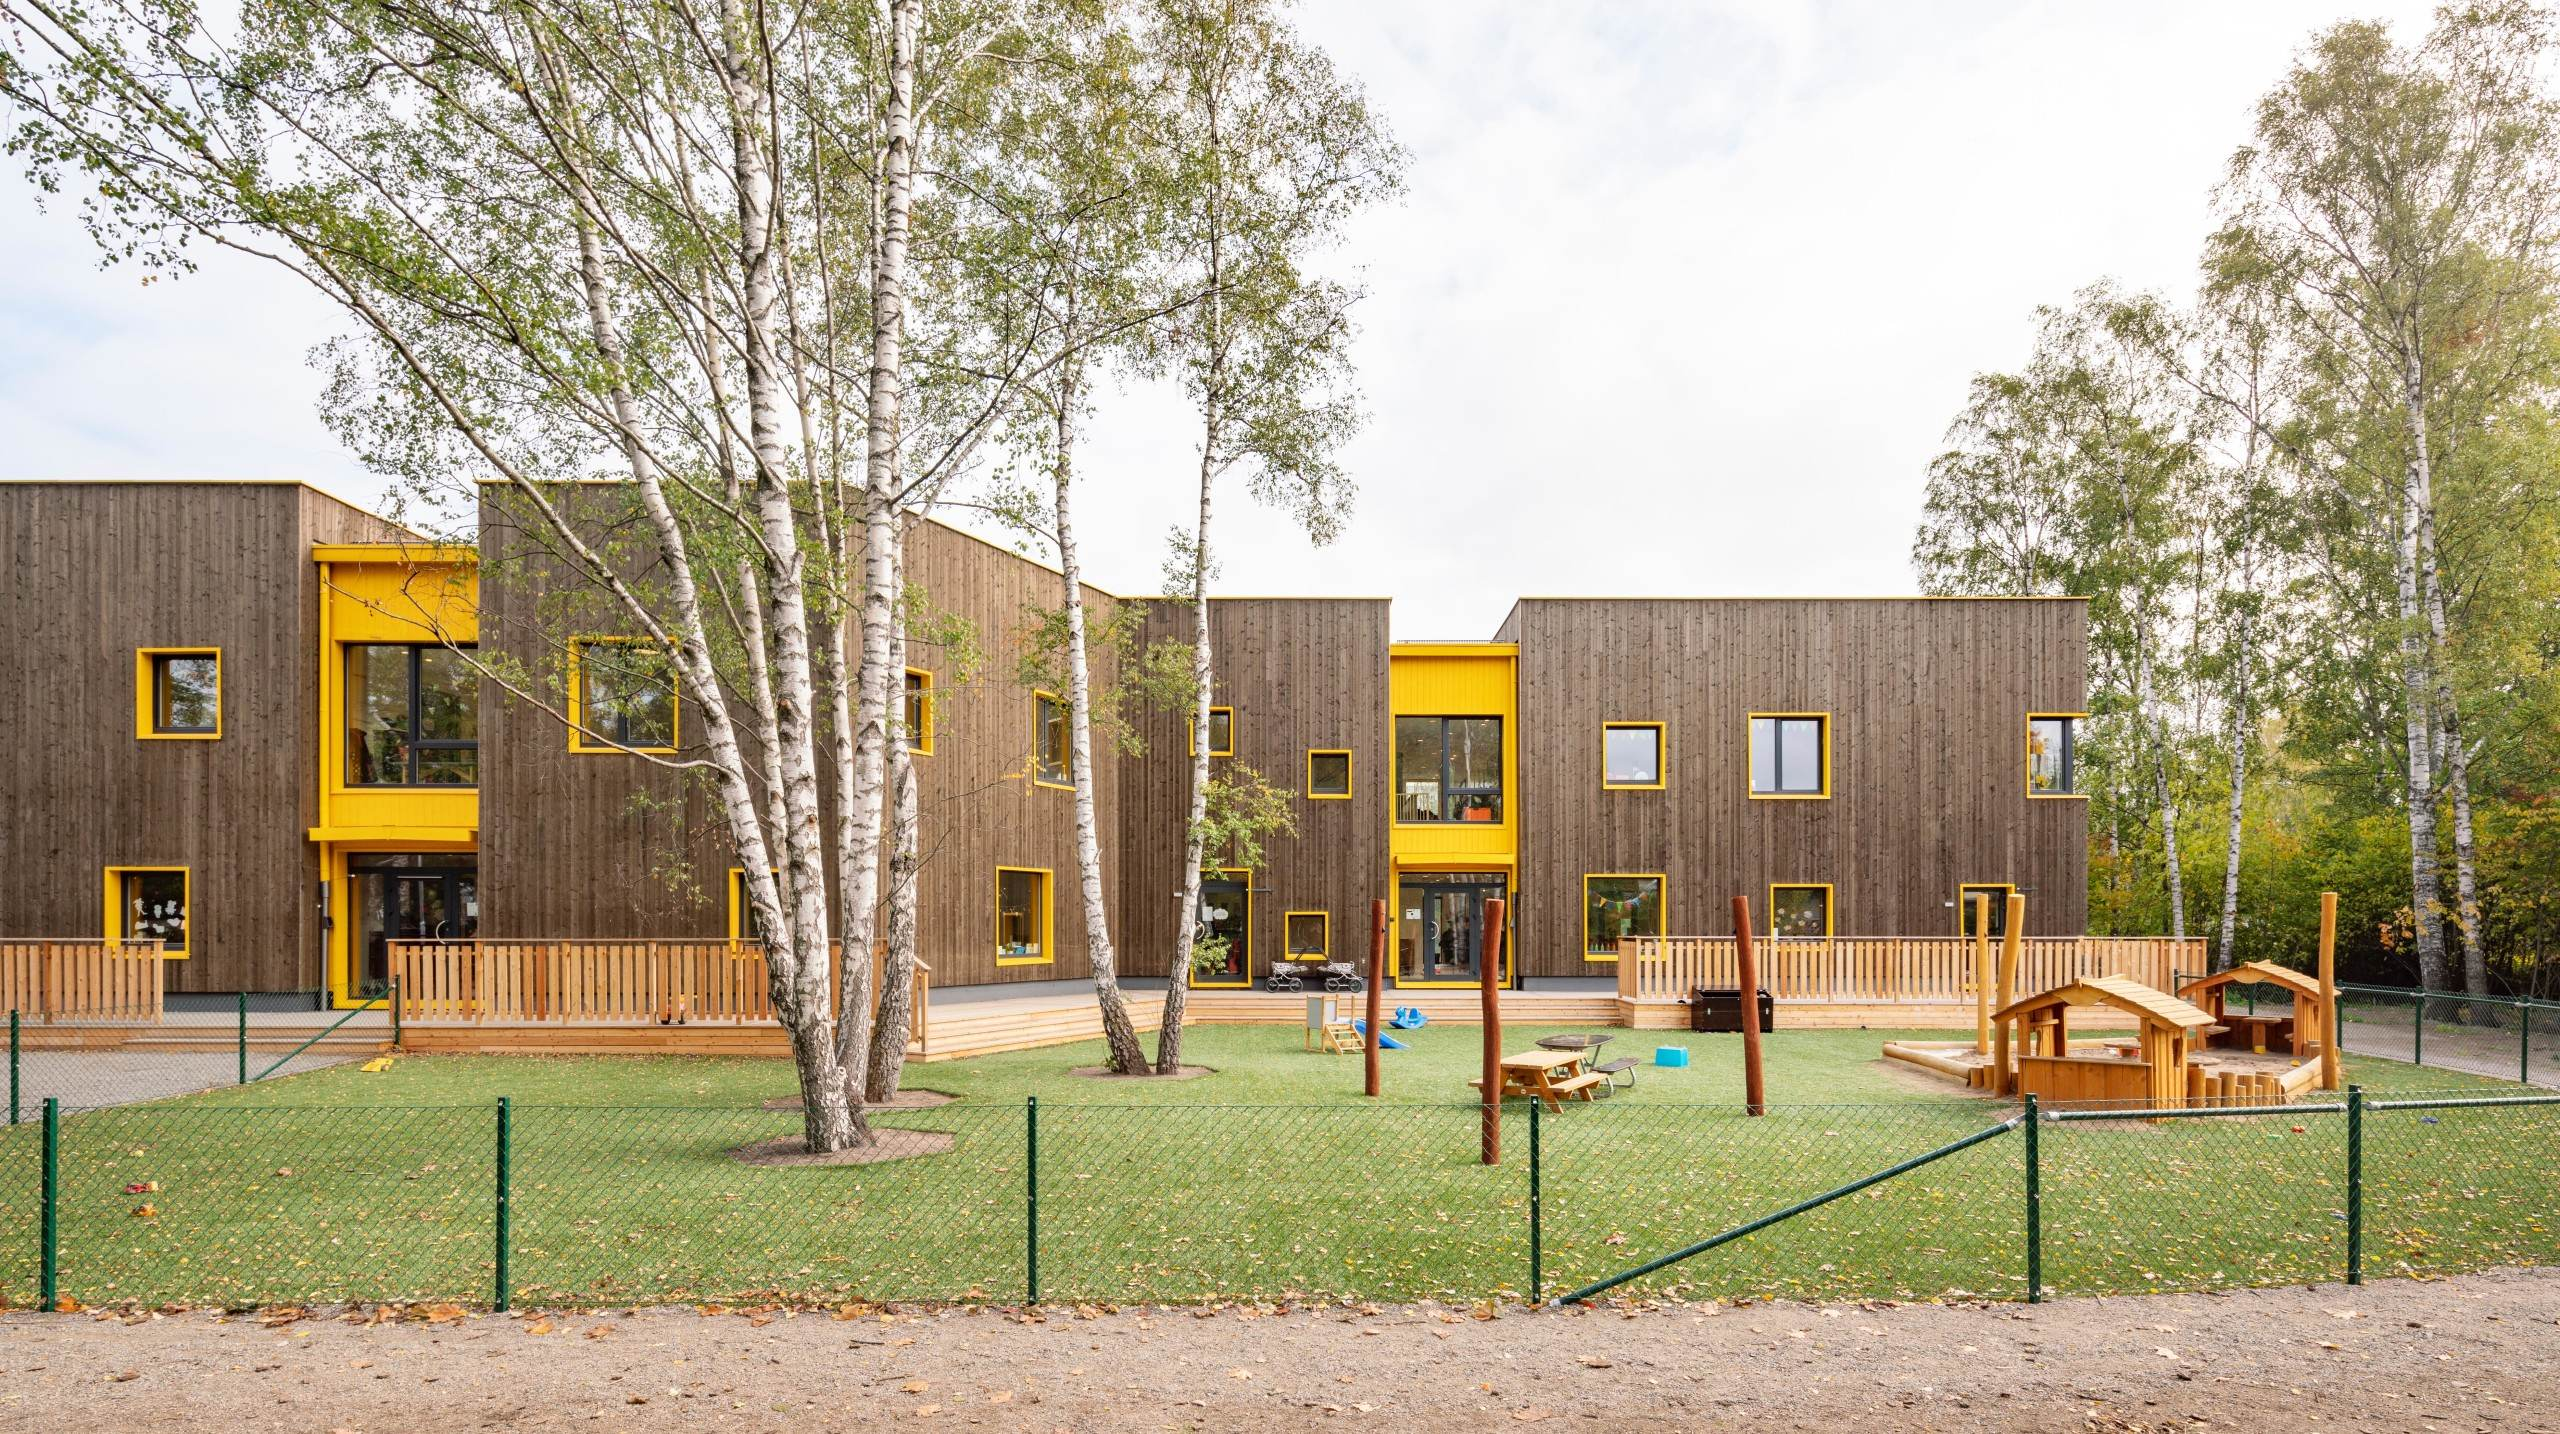 Solängen preschool in Huddinge, photographed by architectural photographer Mattias Hamrén.